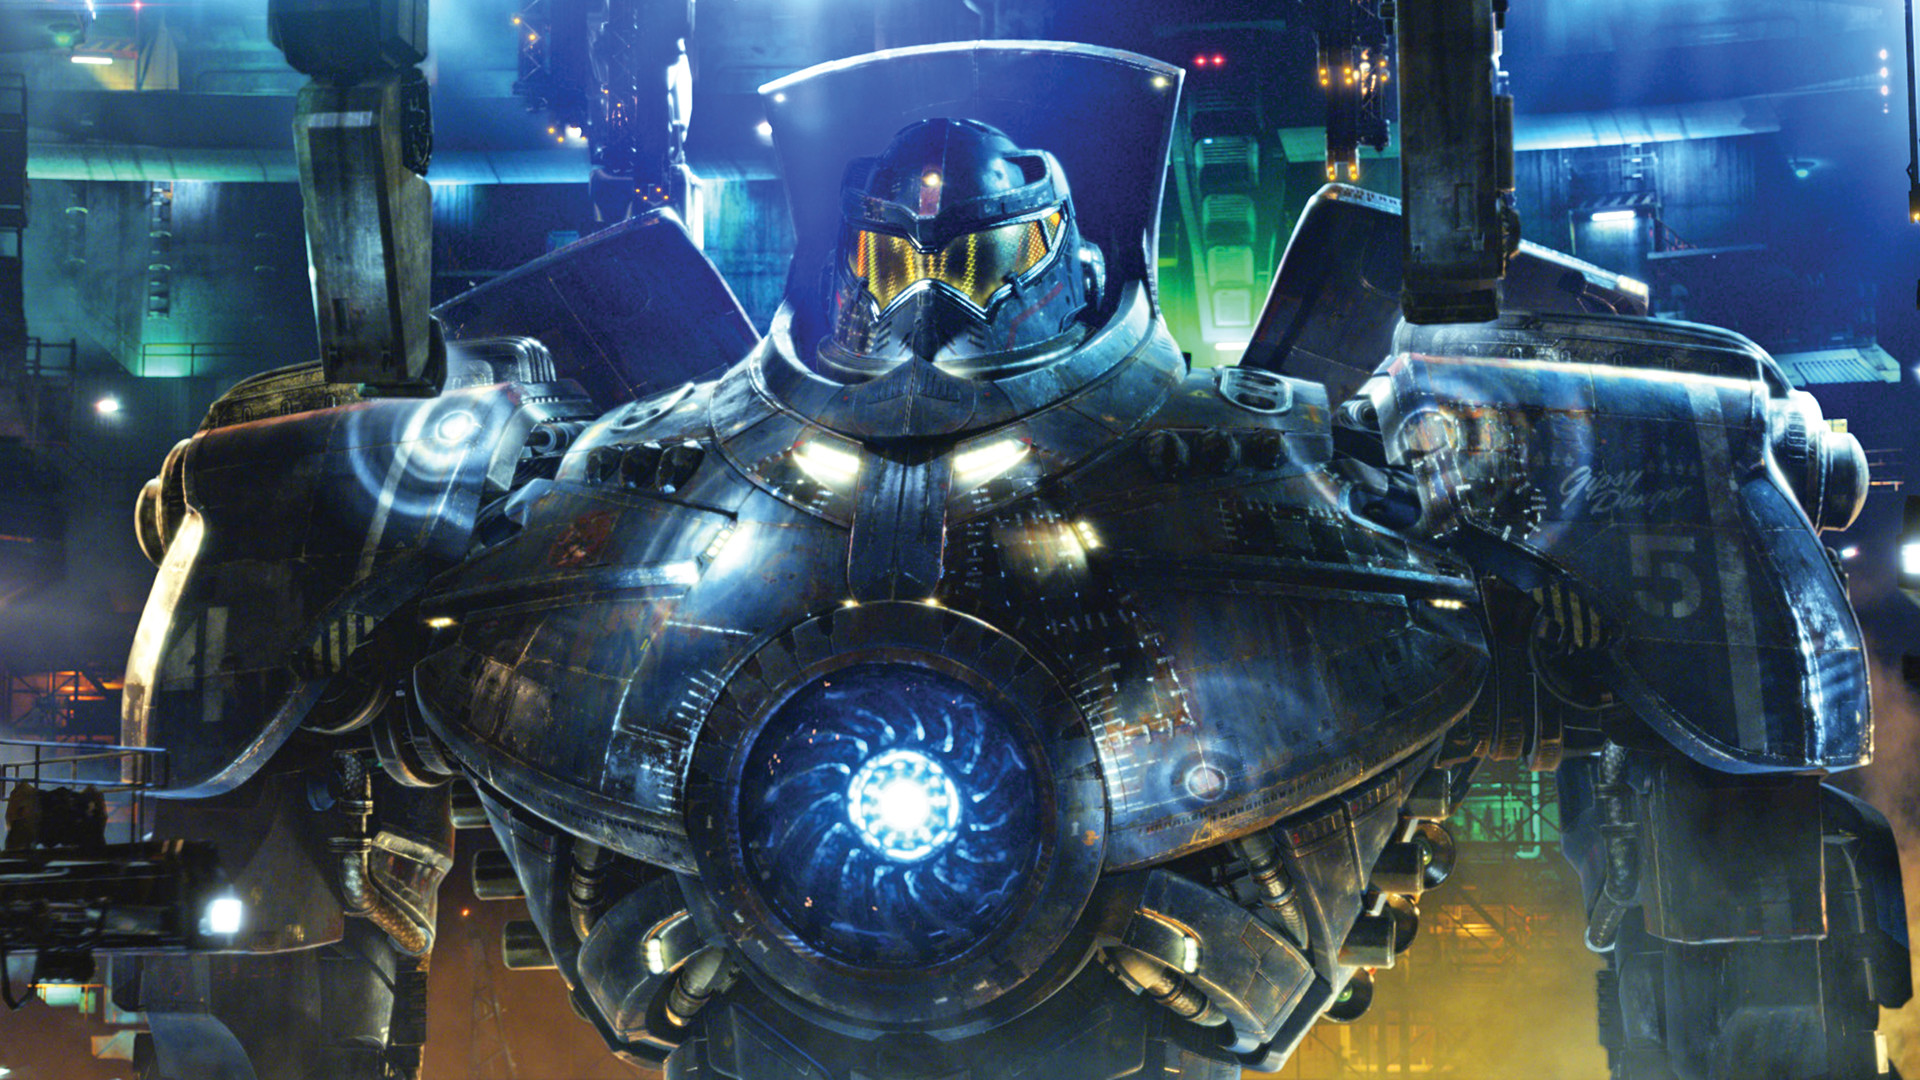 1920x1080 Pacific Rim Jaeger Gypsy Danger - wallpaper.